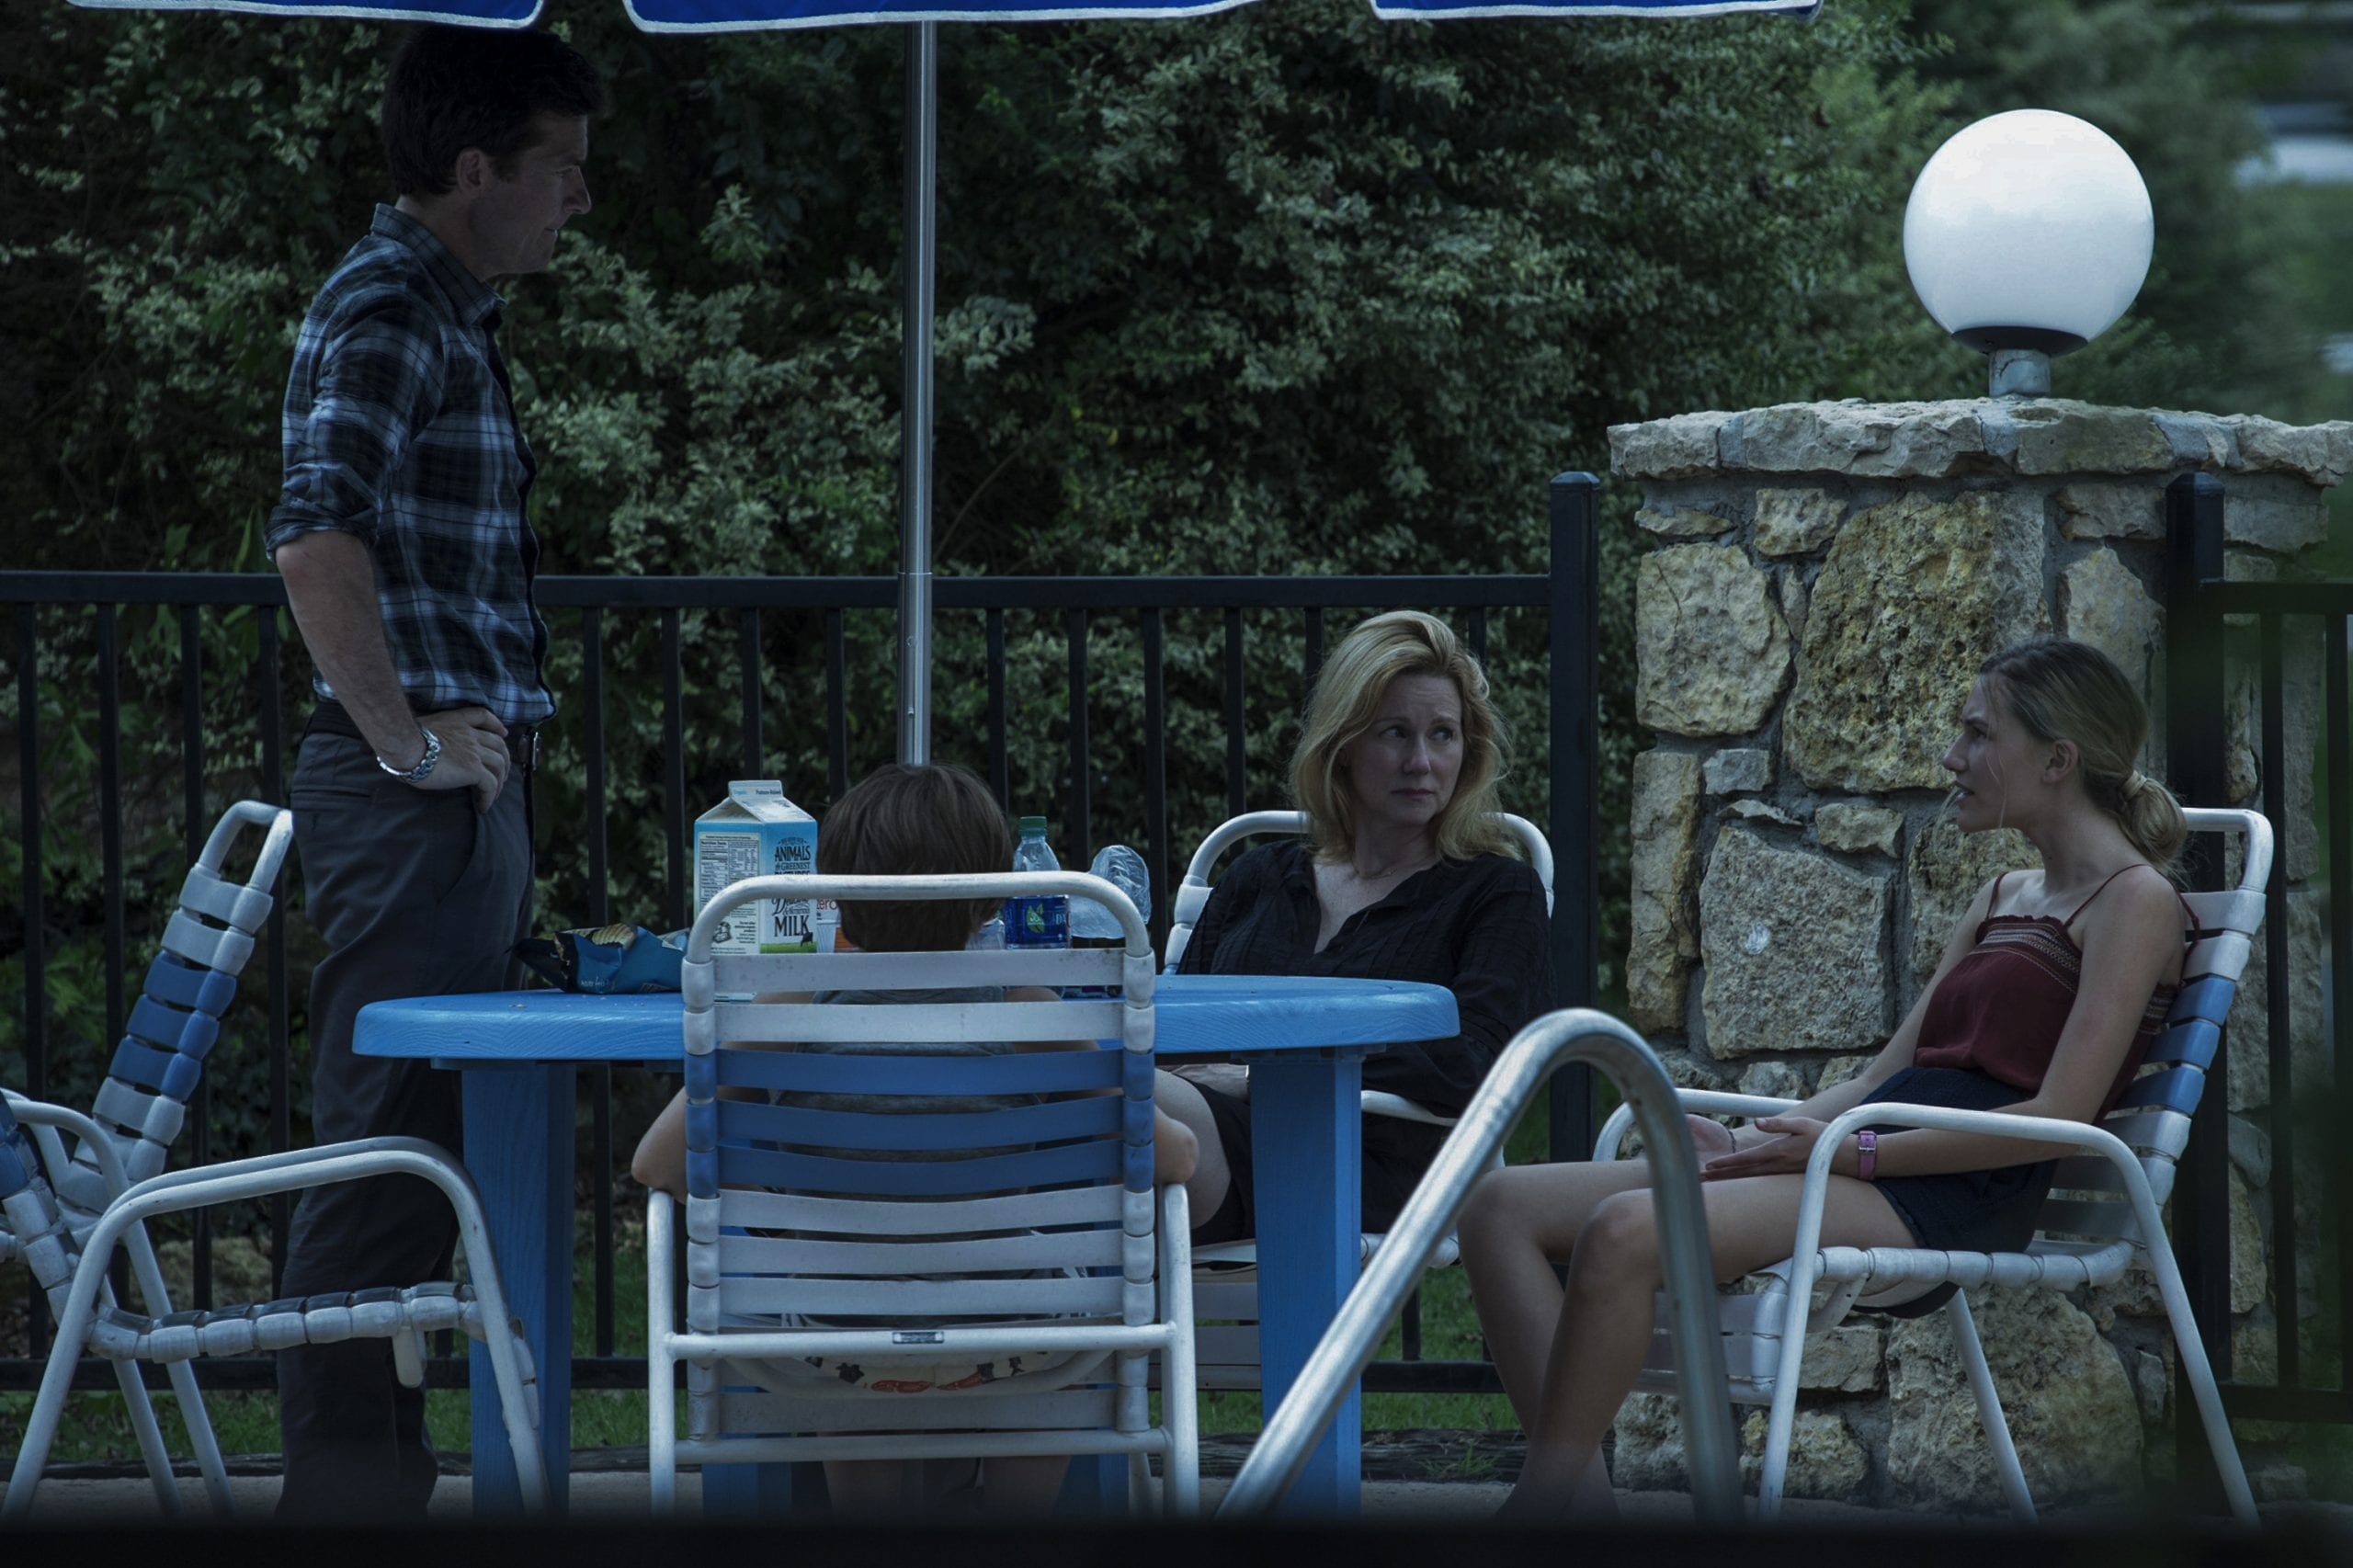 Marty Byrde (Jason Bateman), Jonah Byrde (Skylar Gaertner), Wendy Byrde (Laura Linney) and Charlotte Byrde (Sofia Hublitz) in Ozark season 1 episode 2 Photo credit: Jackson Davis/Netflix